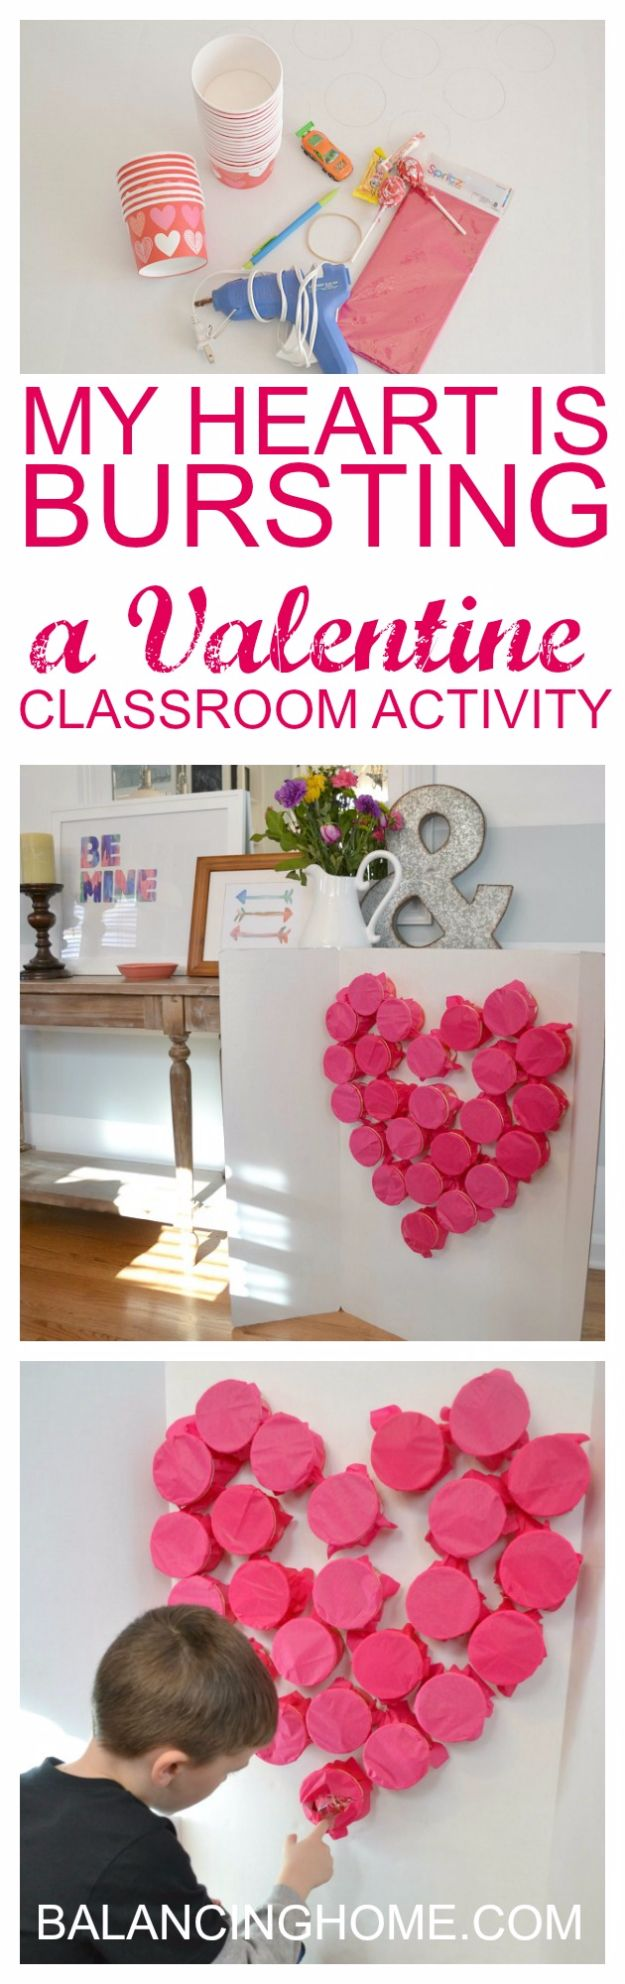 Cool Games To Make for Valentines Day - My Heart Is Bursting - Cheap and Easy Crafts For Valentine Parties - Ideas for Kids and Adults to Play Bingo, Matching, Free Printables and Cute Game Projects With Hearts, Red and Pink Art Ideas - Adorable Fun for The Holiday Celebrations #valentine #valentinesday